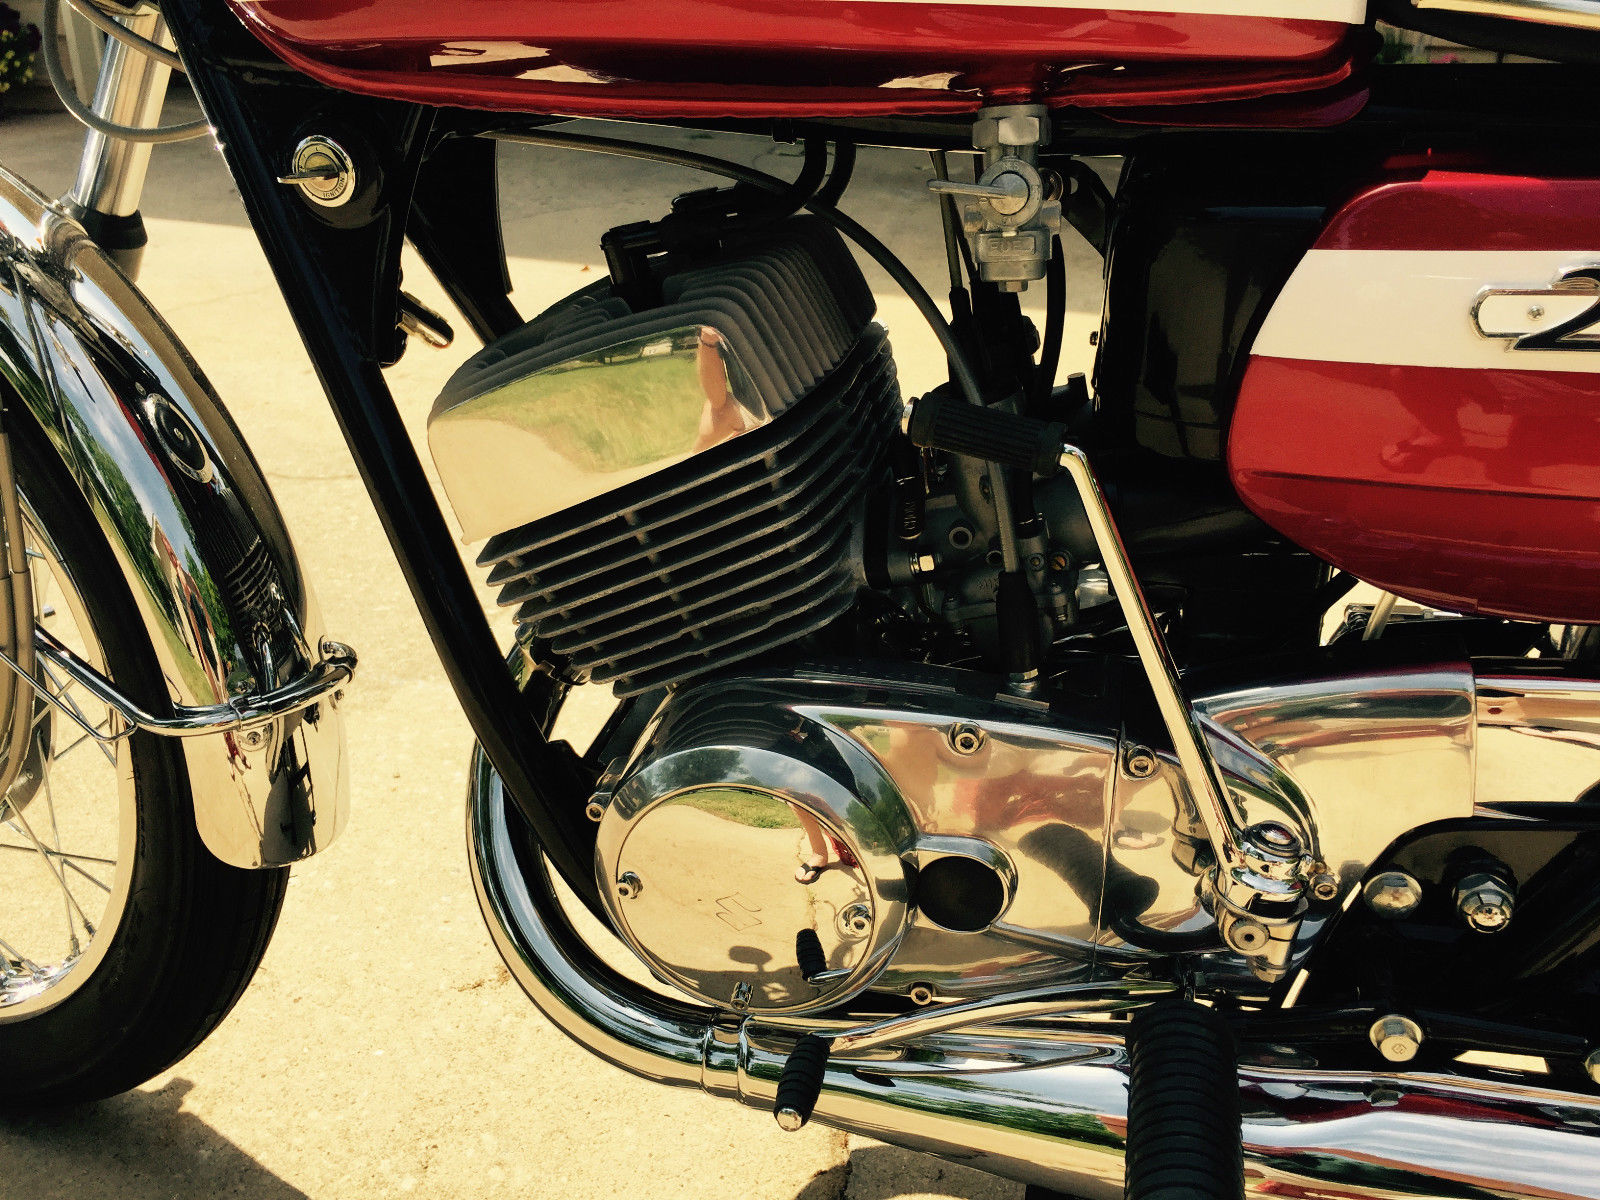 Suzuki T250 - 1972 - Points Cover, Kick Start, Polished Engine Case, Gear Change and Fuel Tap.